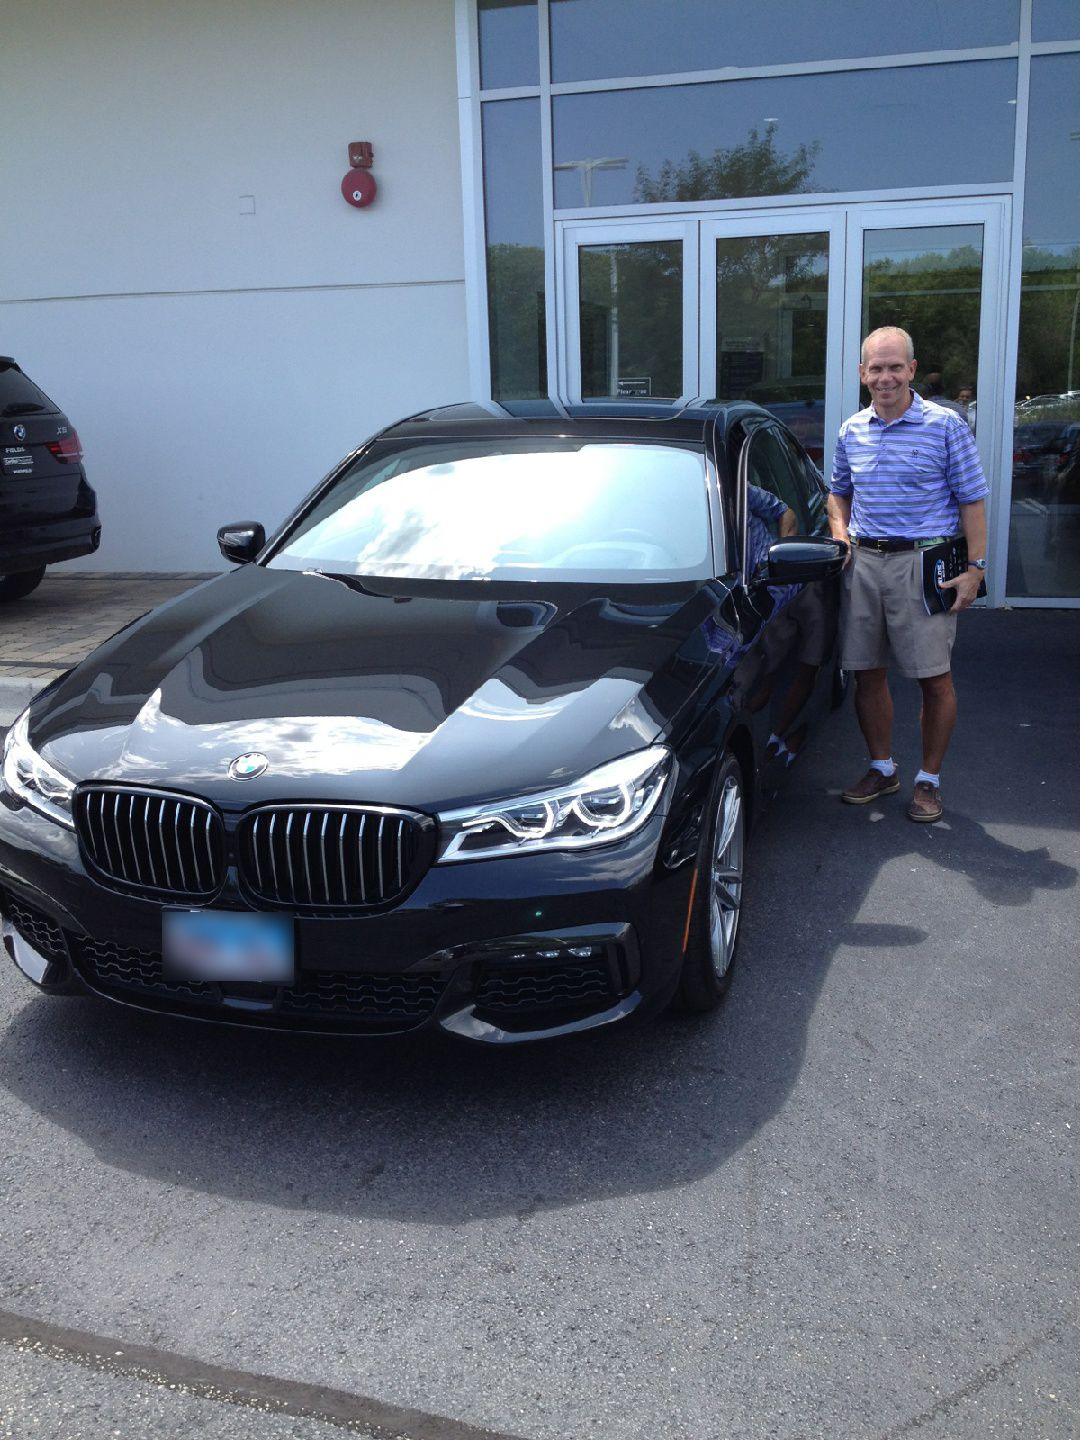 Congratulations To John C On The Purchase Of His New Bmw From Fieldsbmw In Northfield Thanks For Choosing Fieldsauto Group Bmw Bmw Cars For Sale Used Bmw